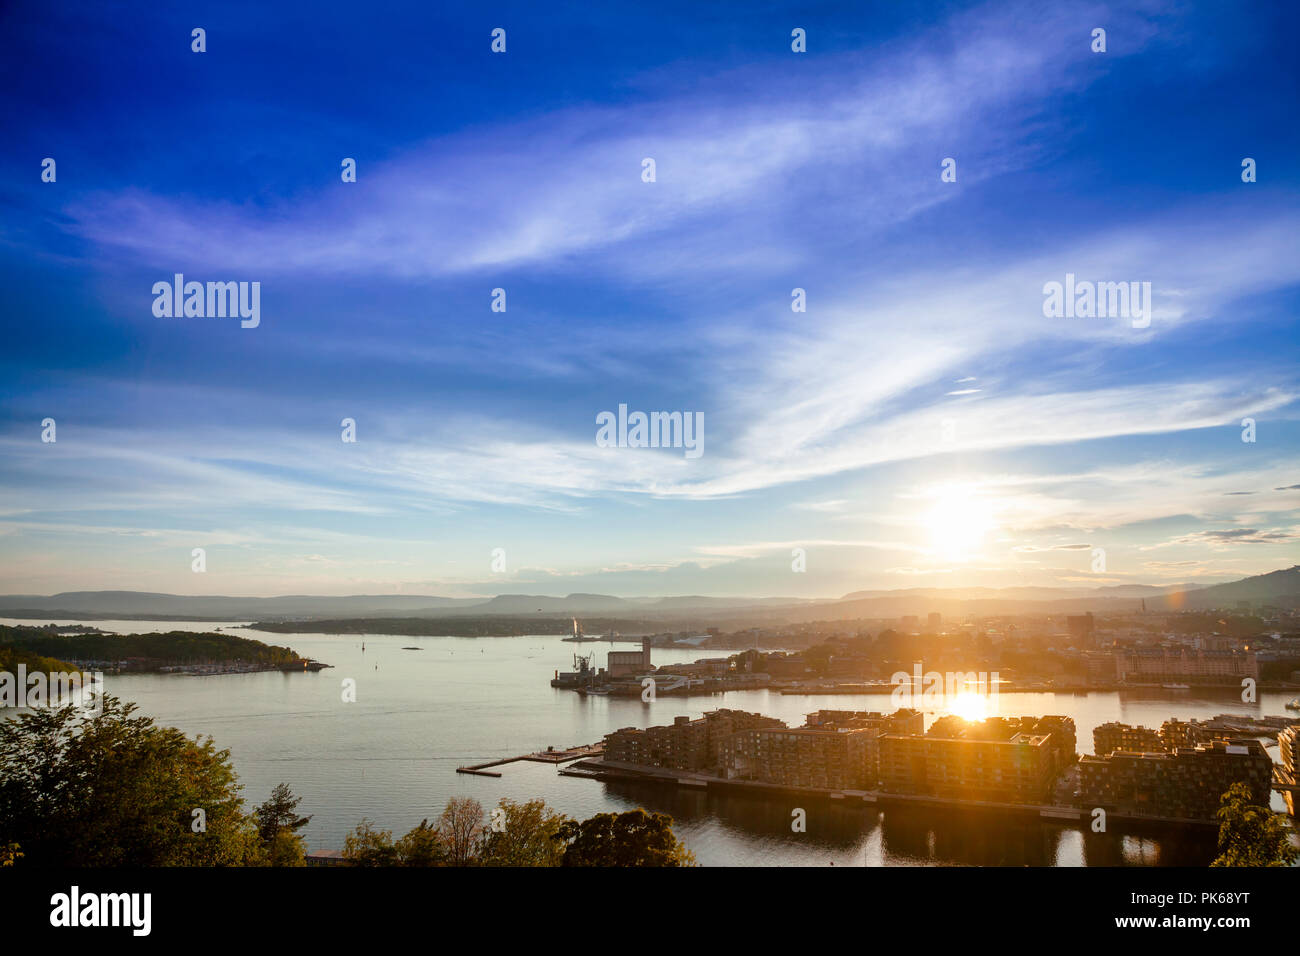 Oslo cityscape as viewed from the Ekeberg hill at sunset with sun reflecting in Oslofjord, Norway, Scandinavia - Stock Image